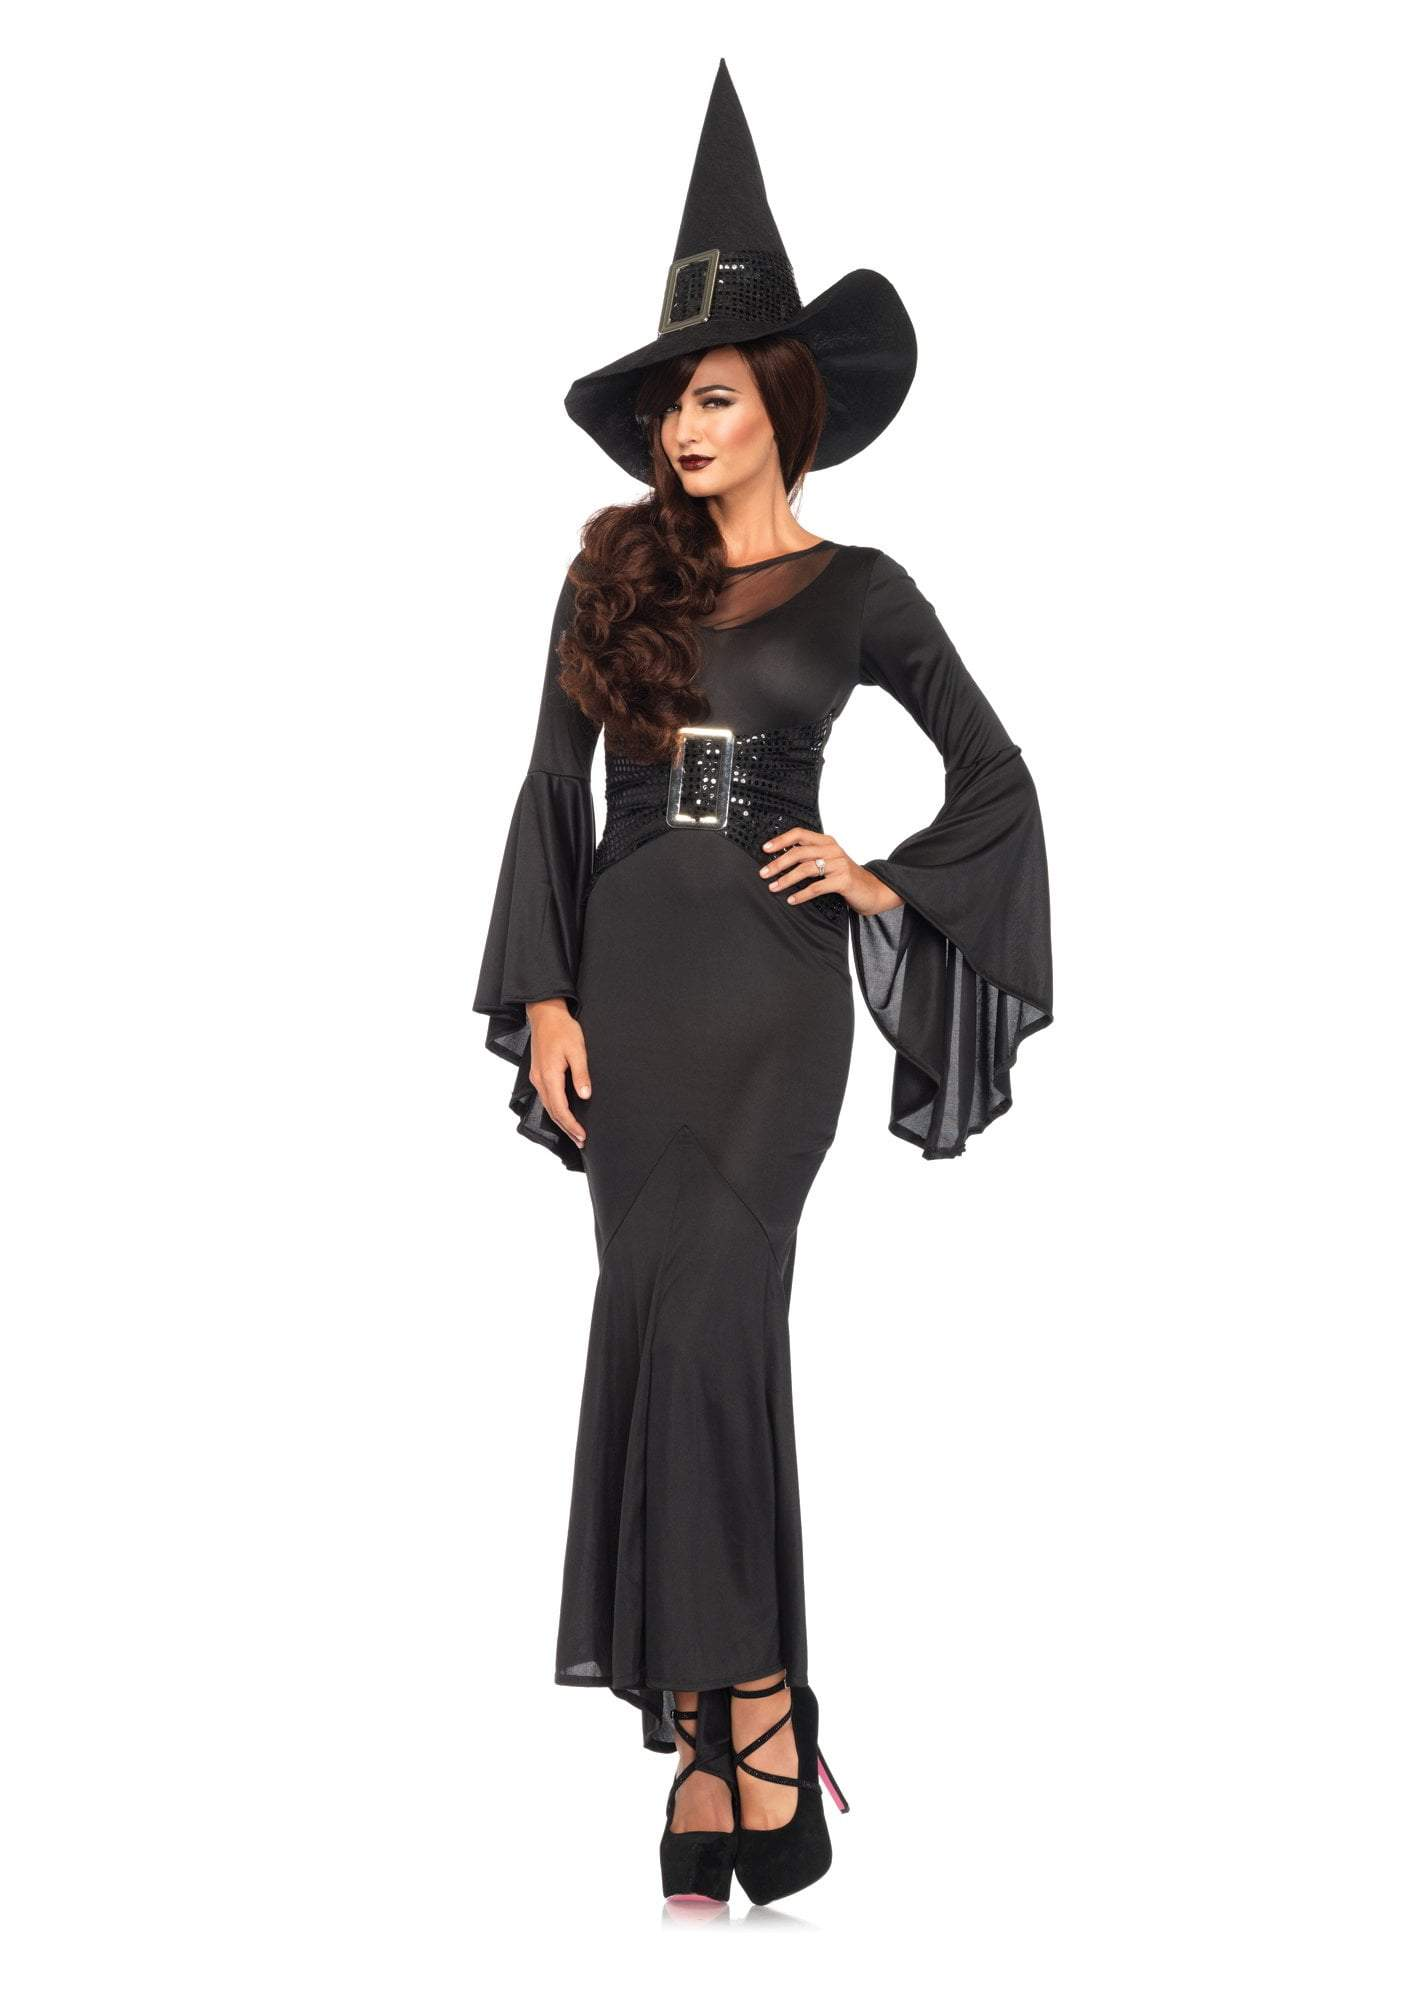 Leg Avenue Costumes MEDIUM/LARGE Adult Wickedly Sexy Witch Costume